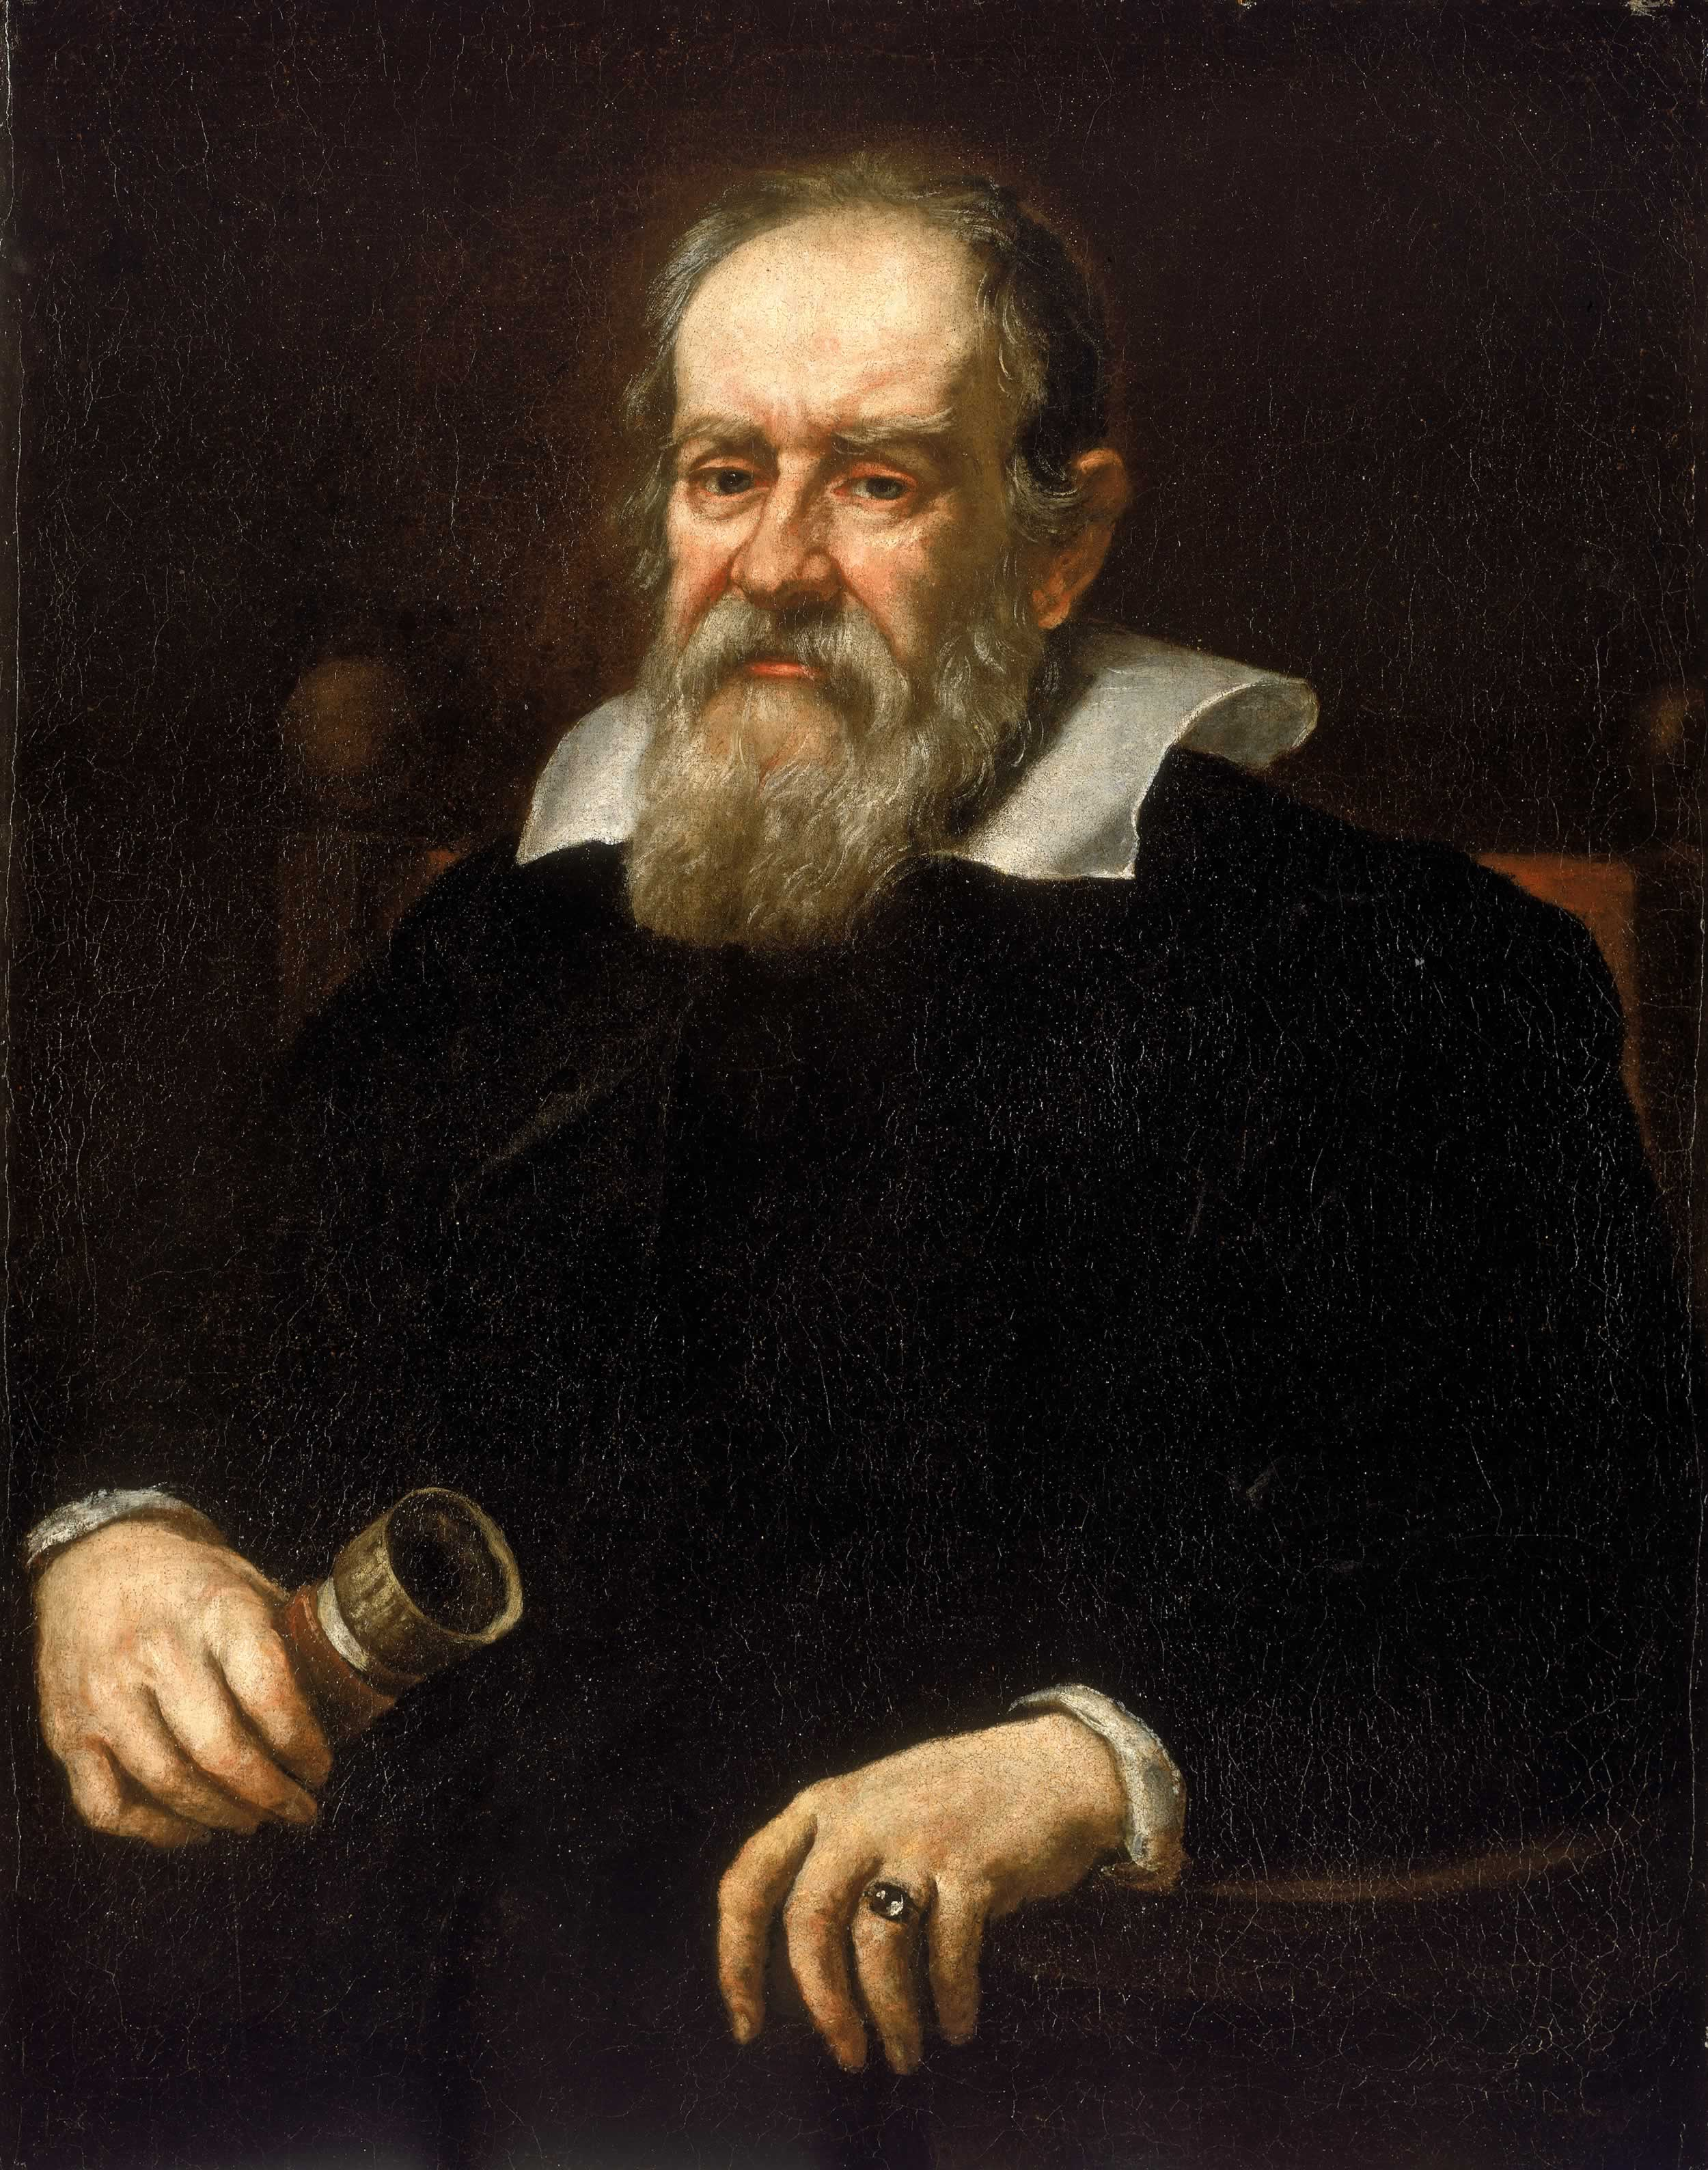 galileo galileis views on scripture versus science Galileo galilei, though famous for his scientific achievements in astronomy,   views would be more devastating to the church than those of luther or calvin   galileo contended that proper interpretation of scripture would agree with  observed.